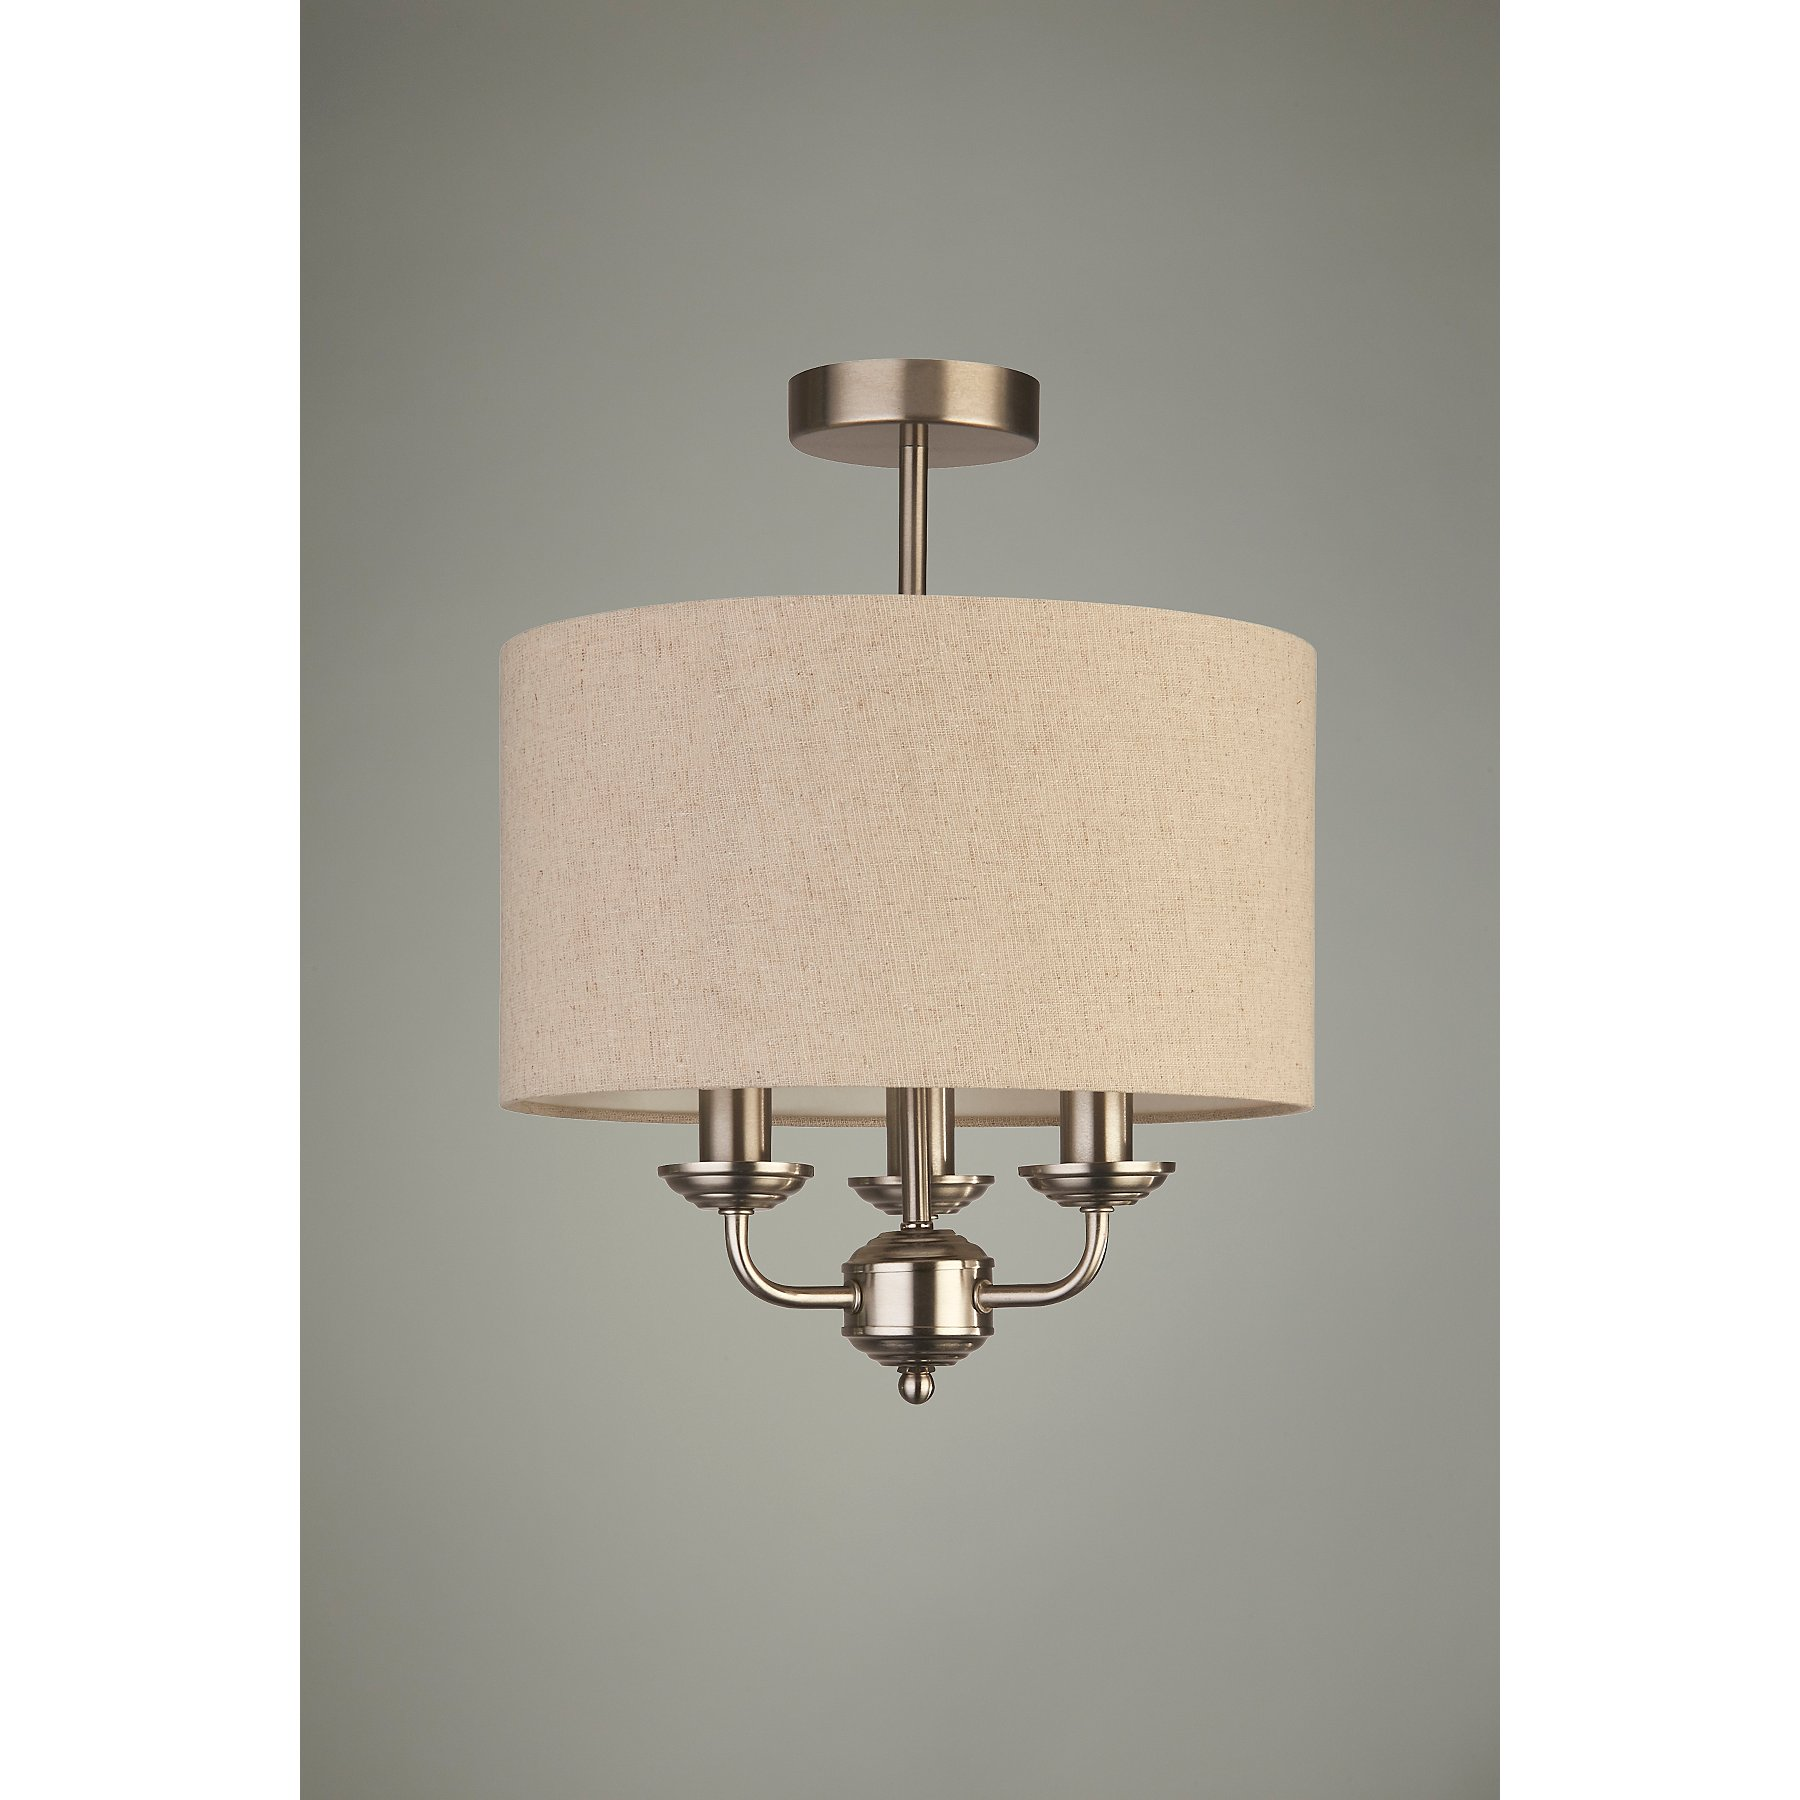 Natural Classic Ceiling Light Shade Home George At Asda